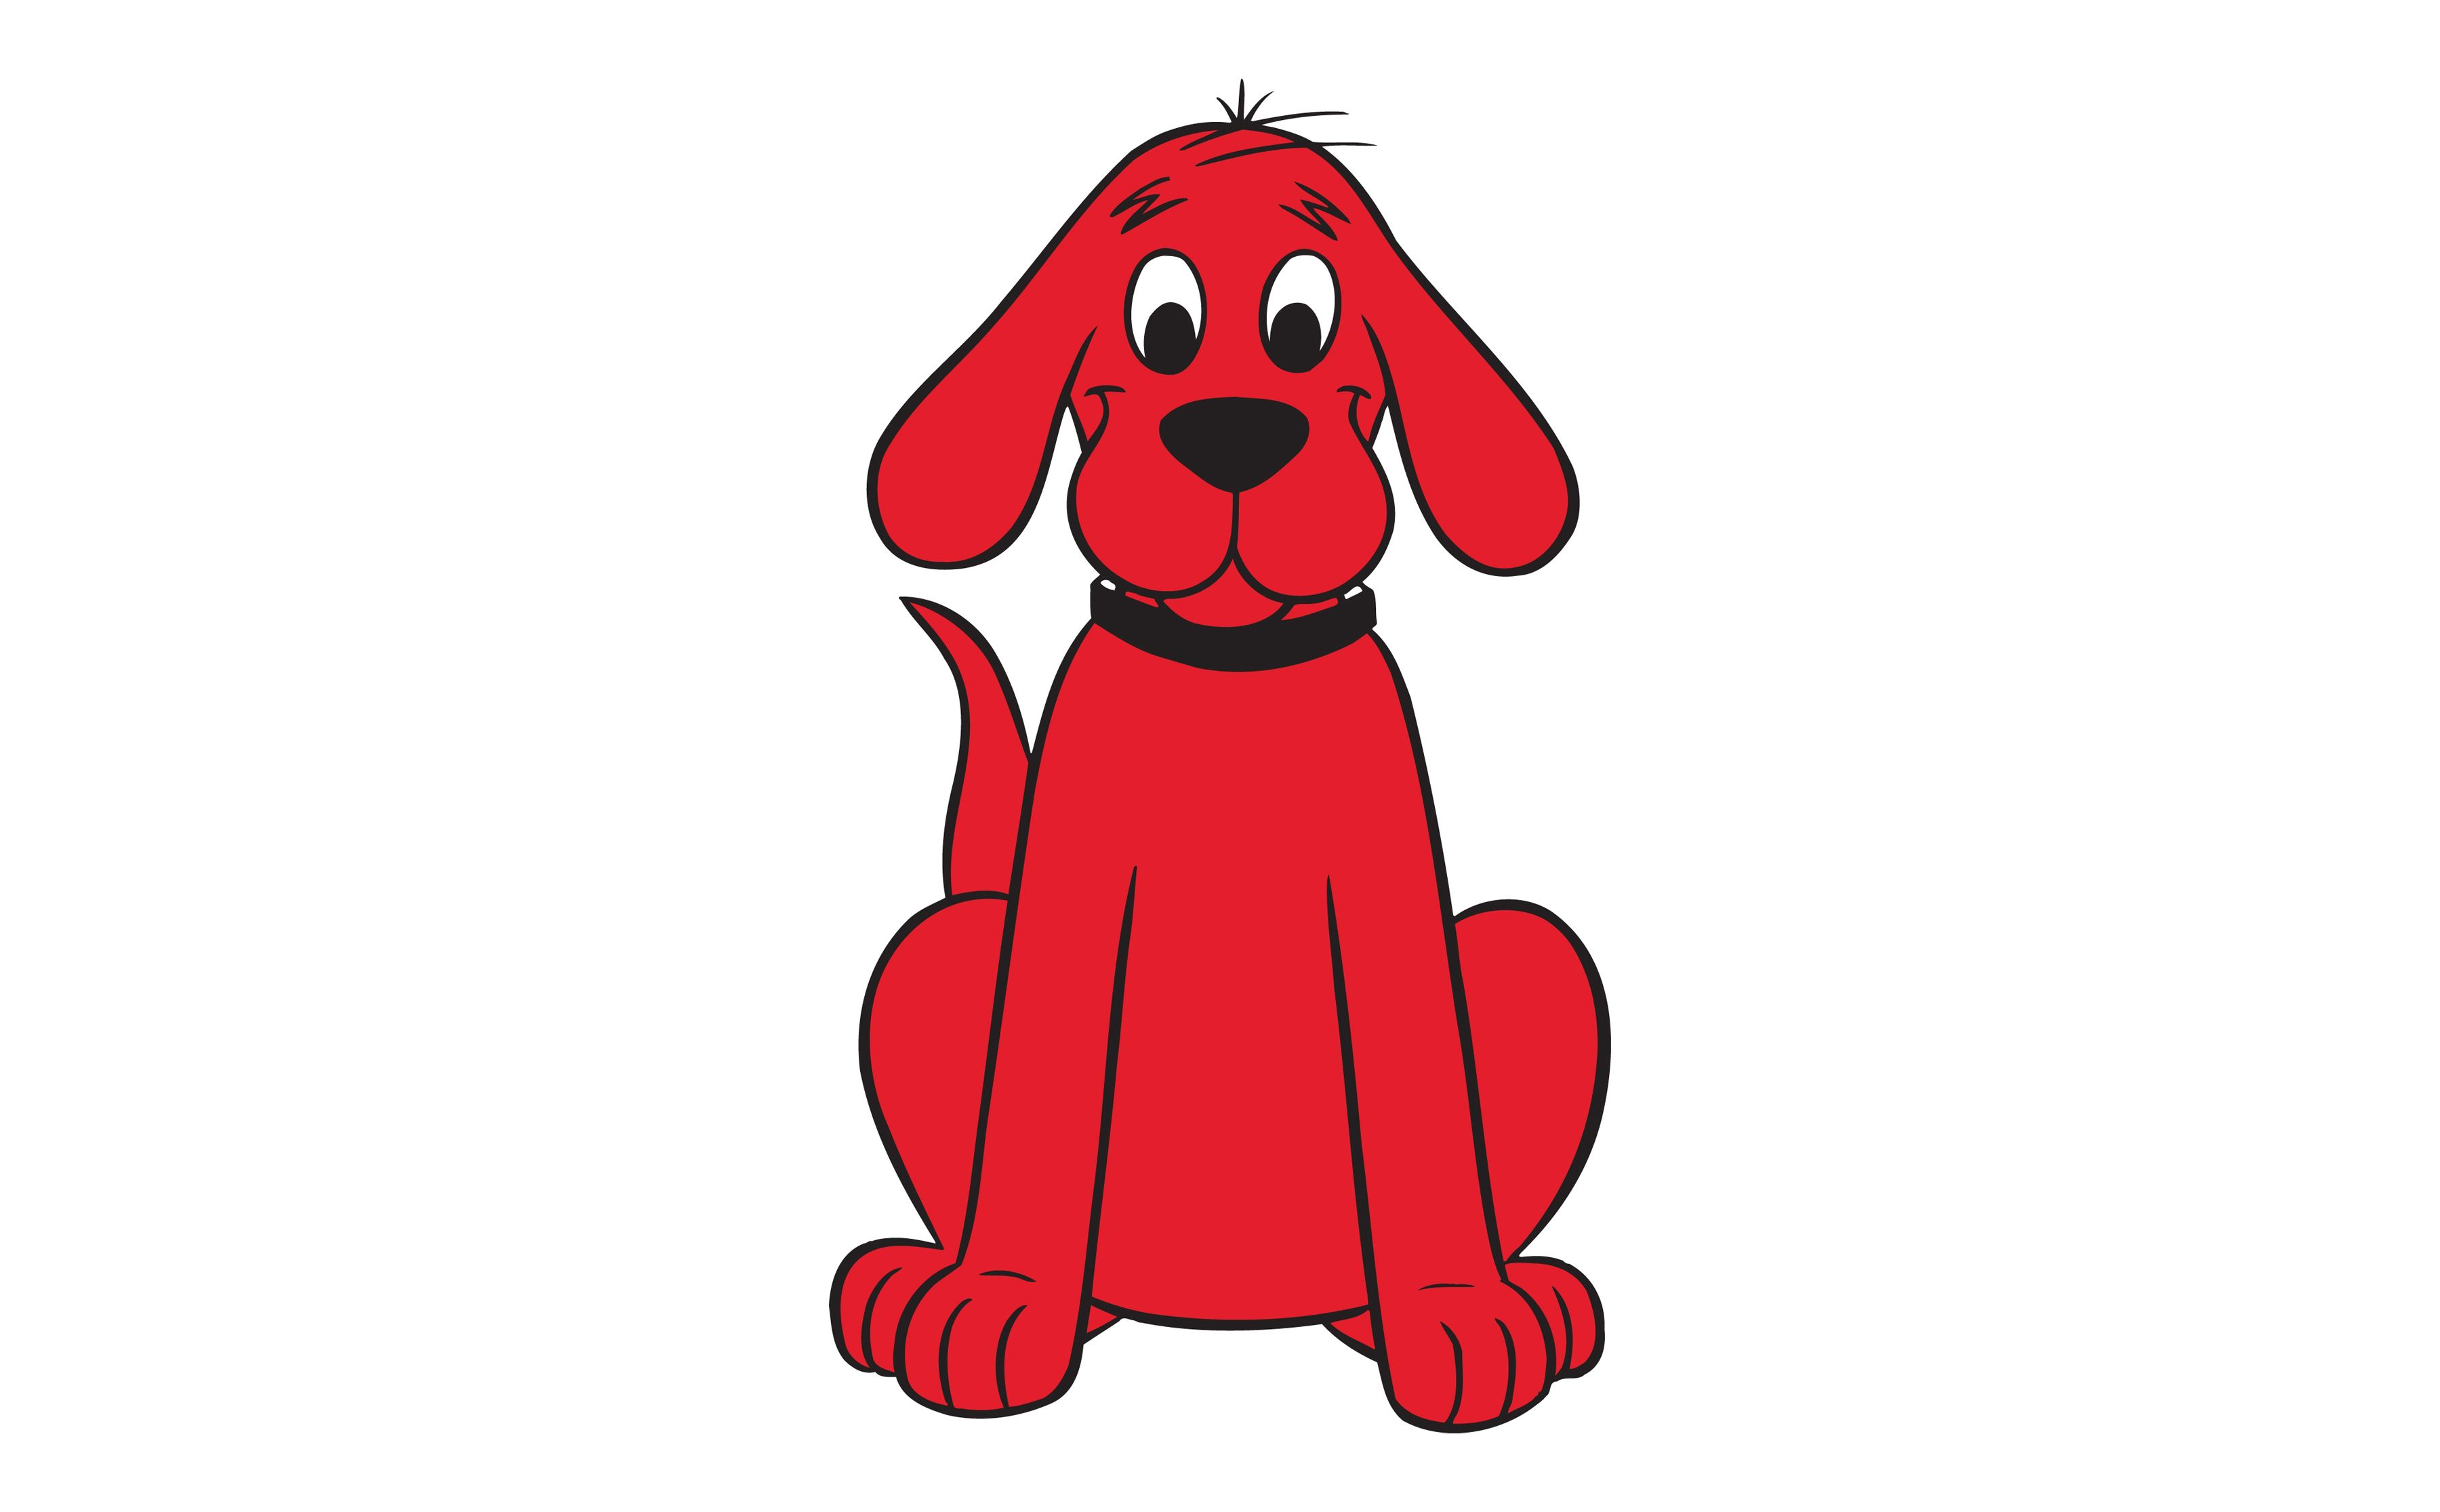 clifford big red dog clipart free clip art images ashley park rh pinterest com dog clipart images black and white dog clipart images black and white